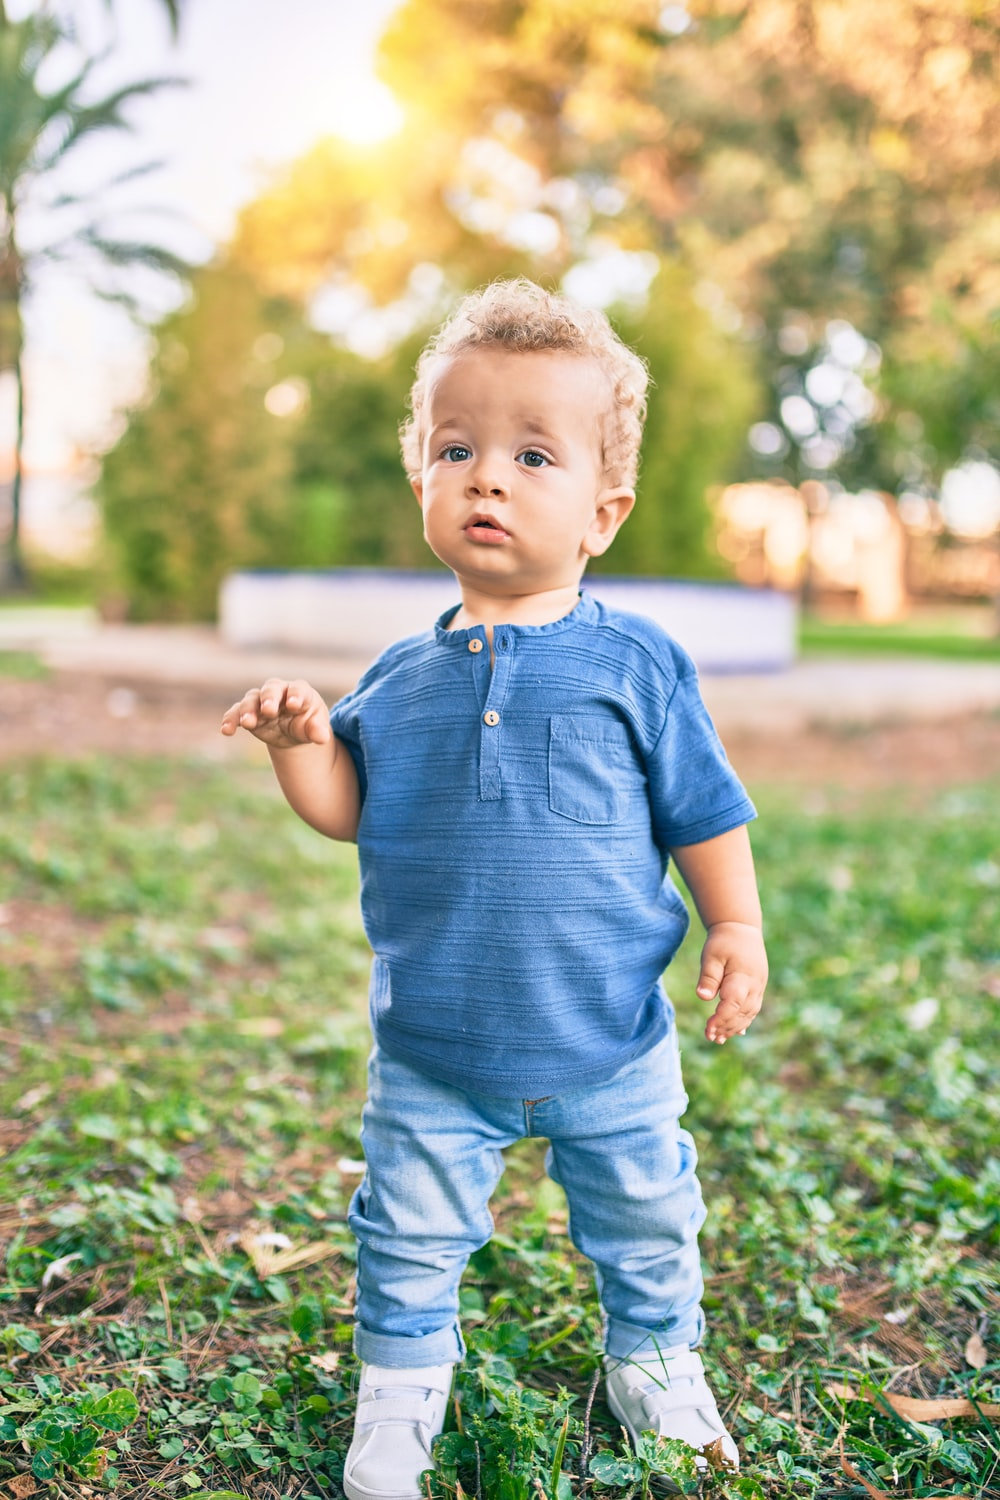 boy in blue polo shirt and blue denim shorts standing on green grass field during daytime